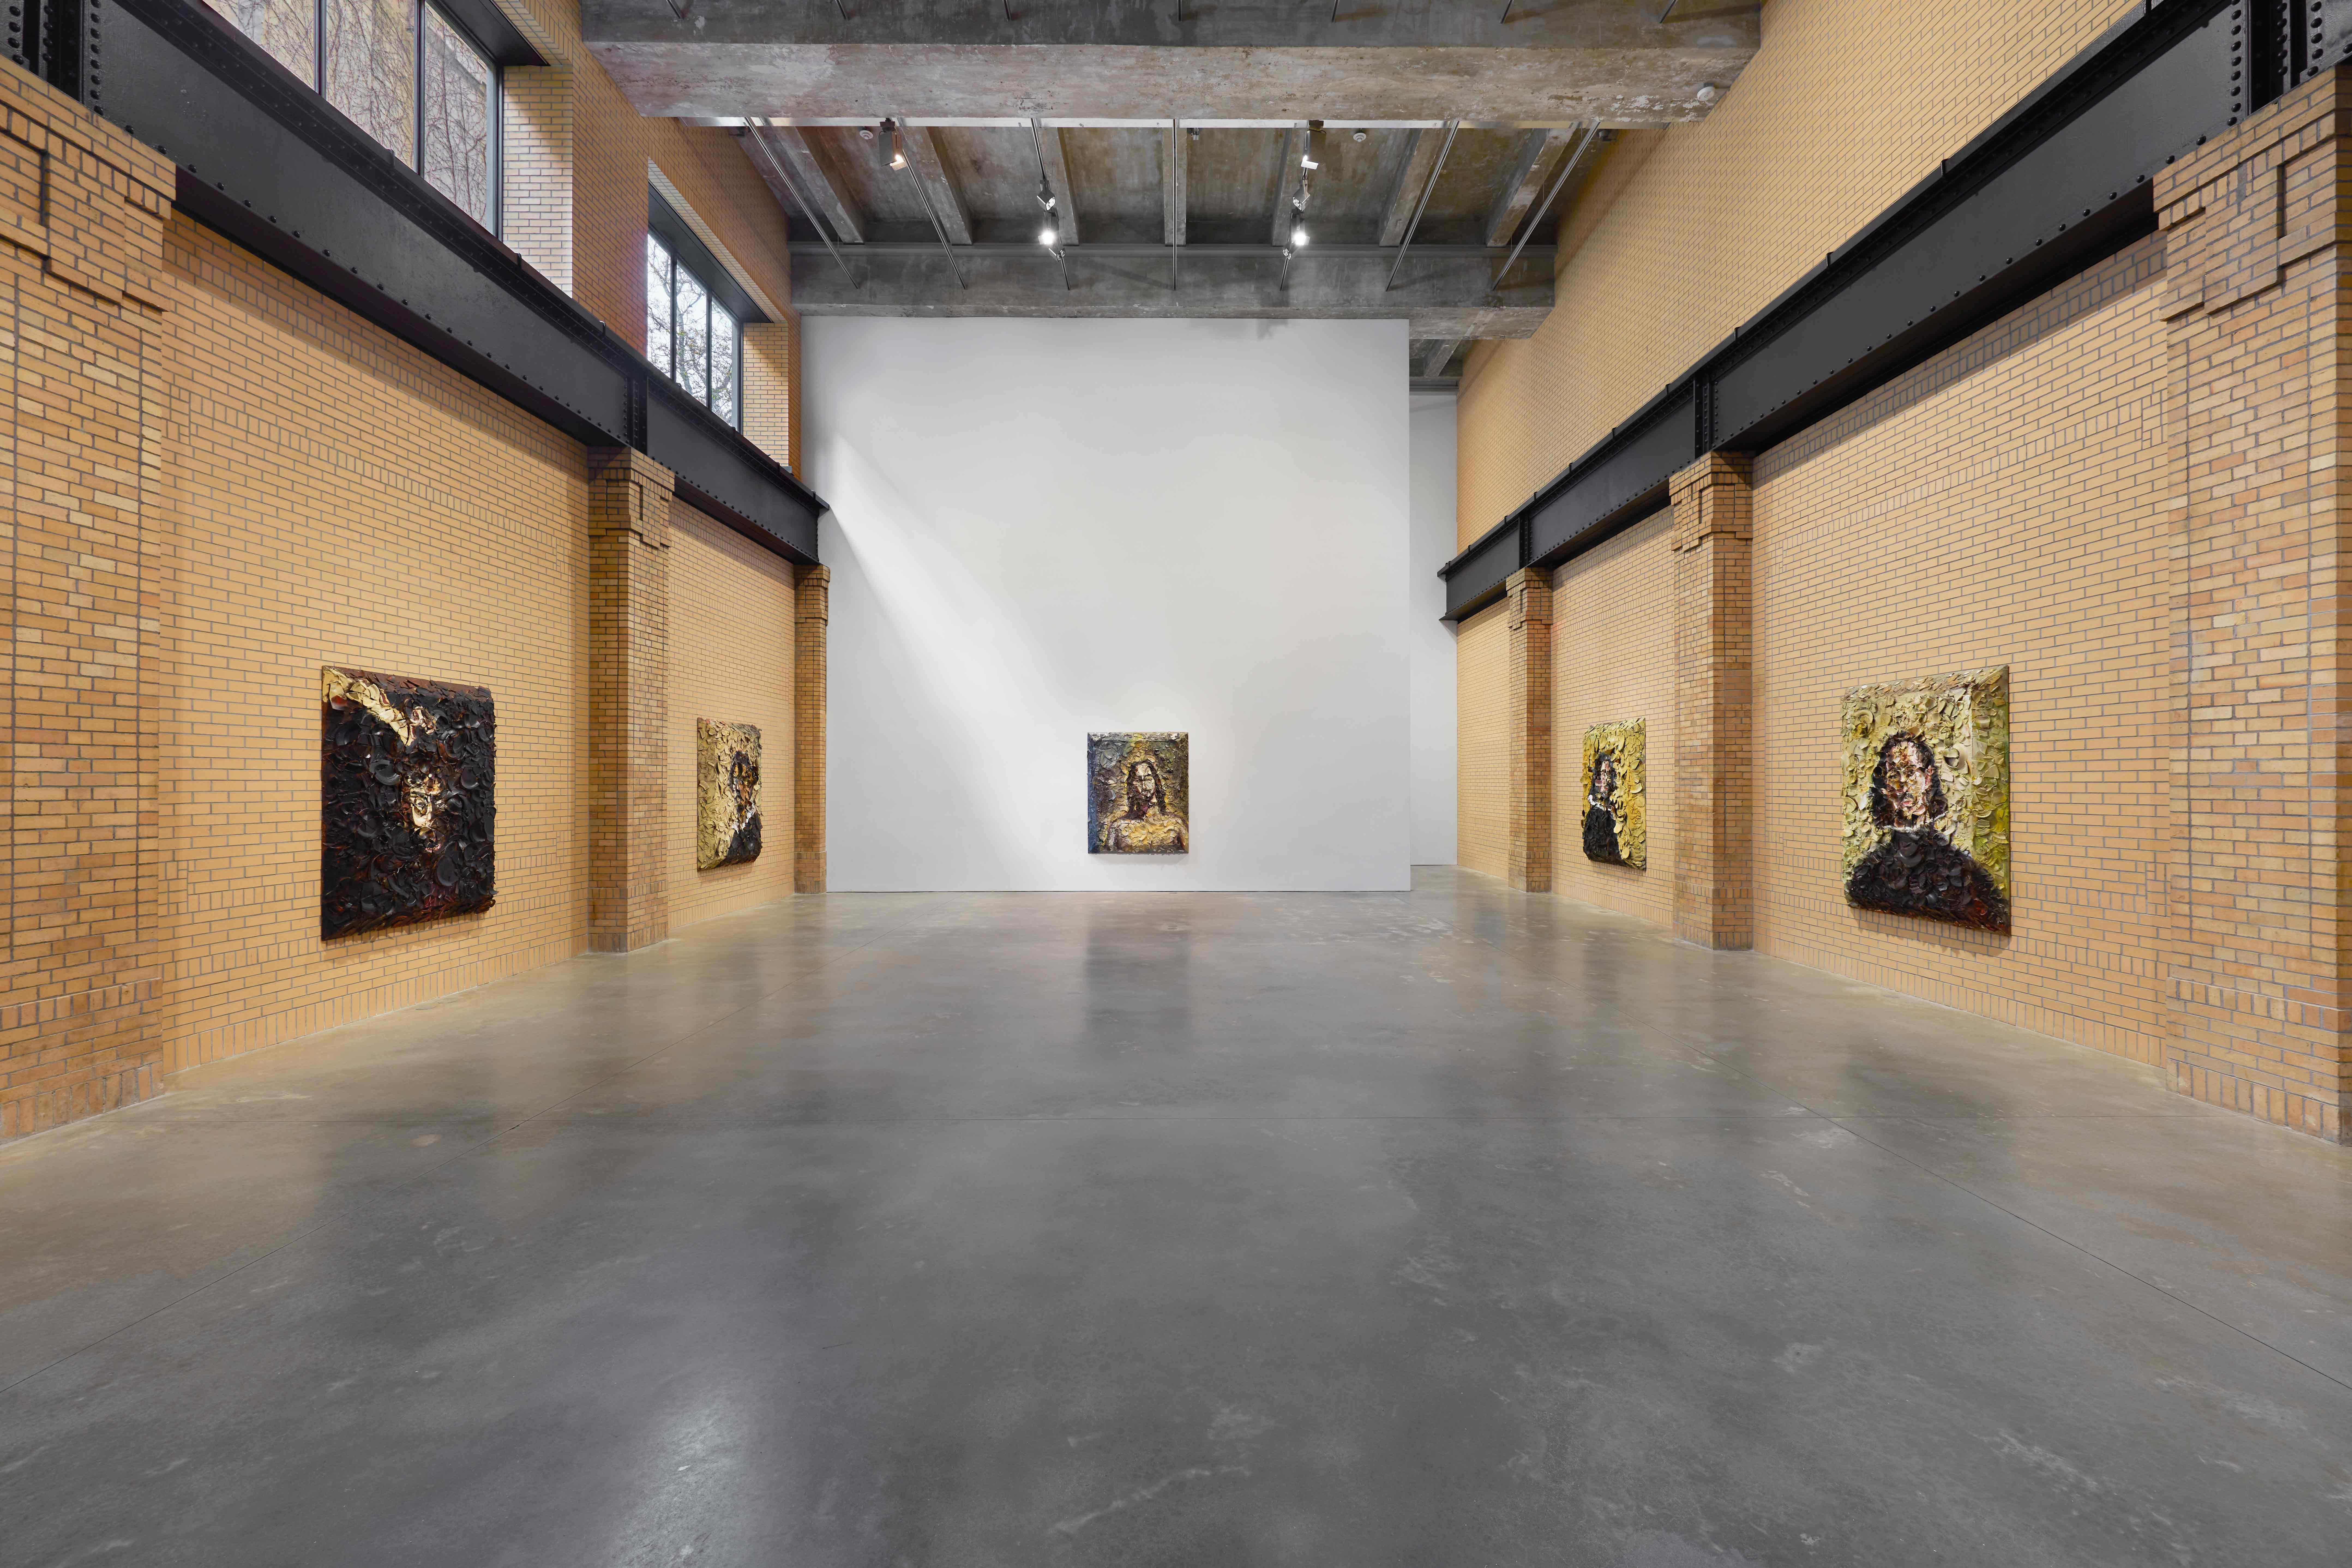 Installation view. Photography by Tom Powel Imaging.